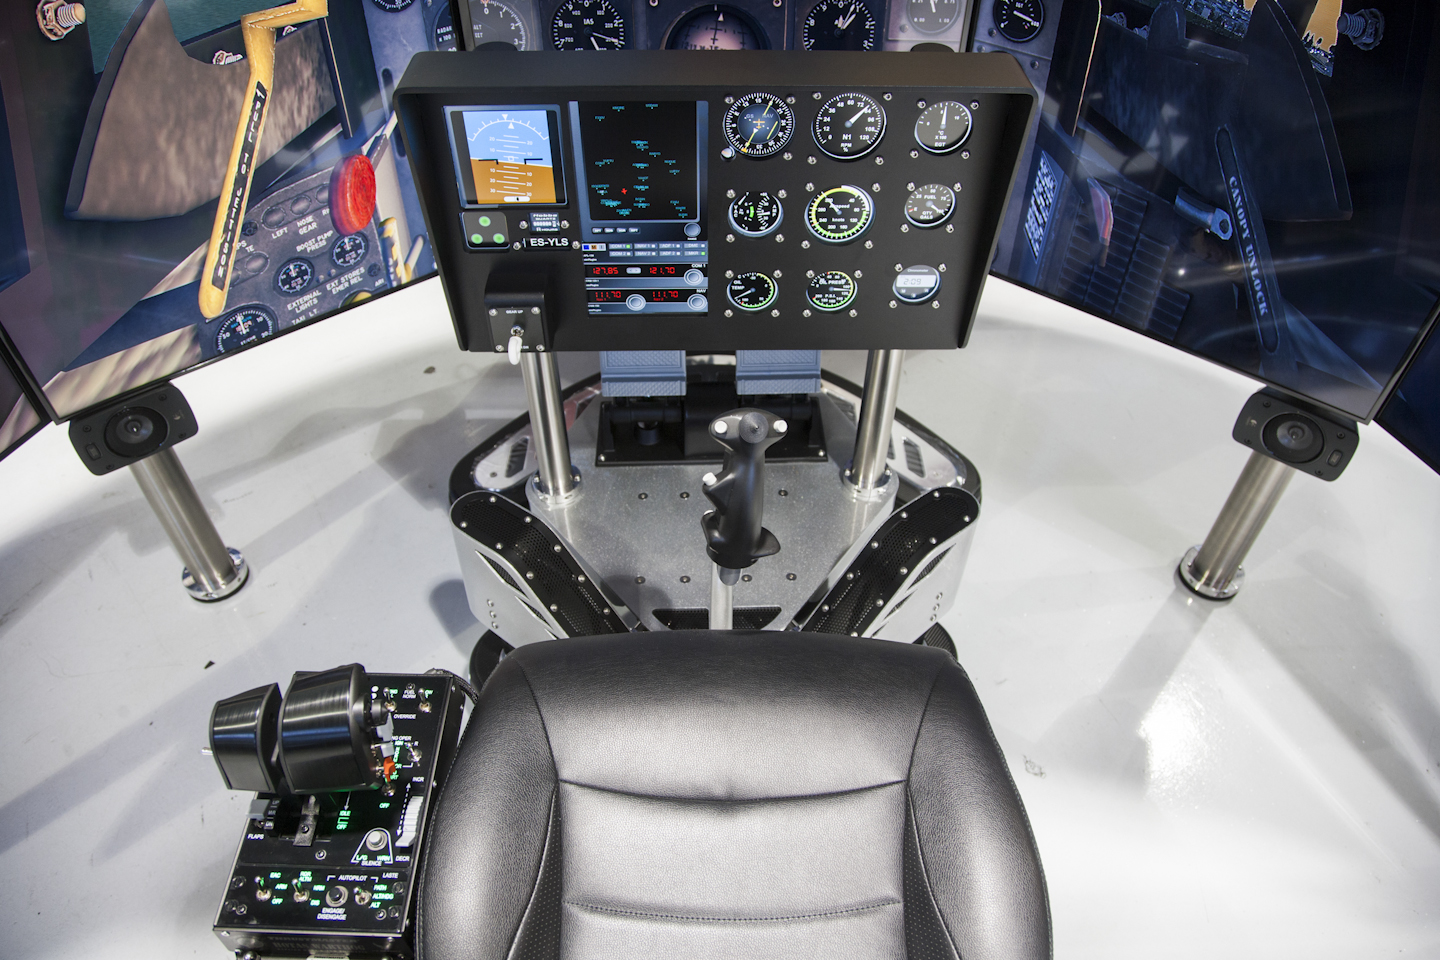 flight simulation controls